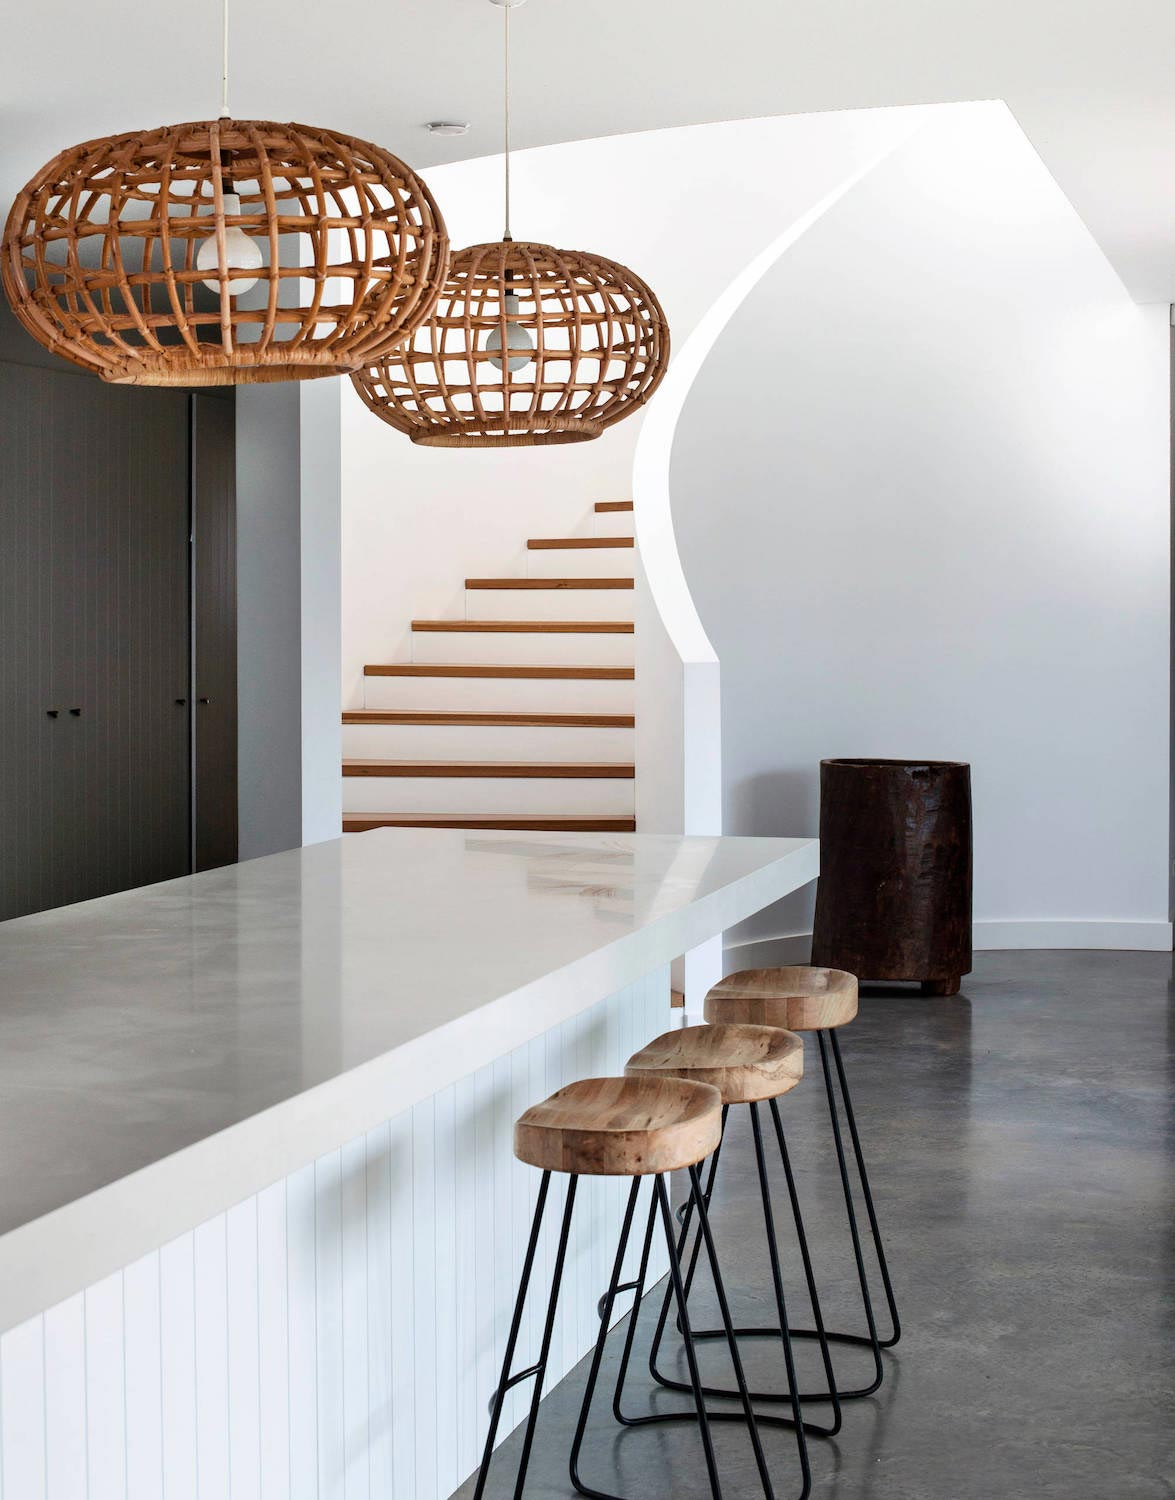 simple-white-palette-natural-textures-contribute-relaxed-beach-house ...